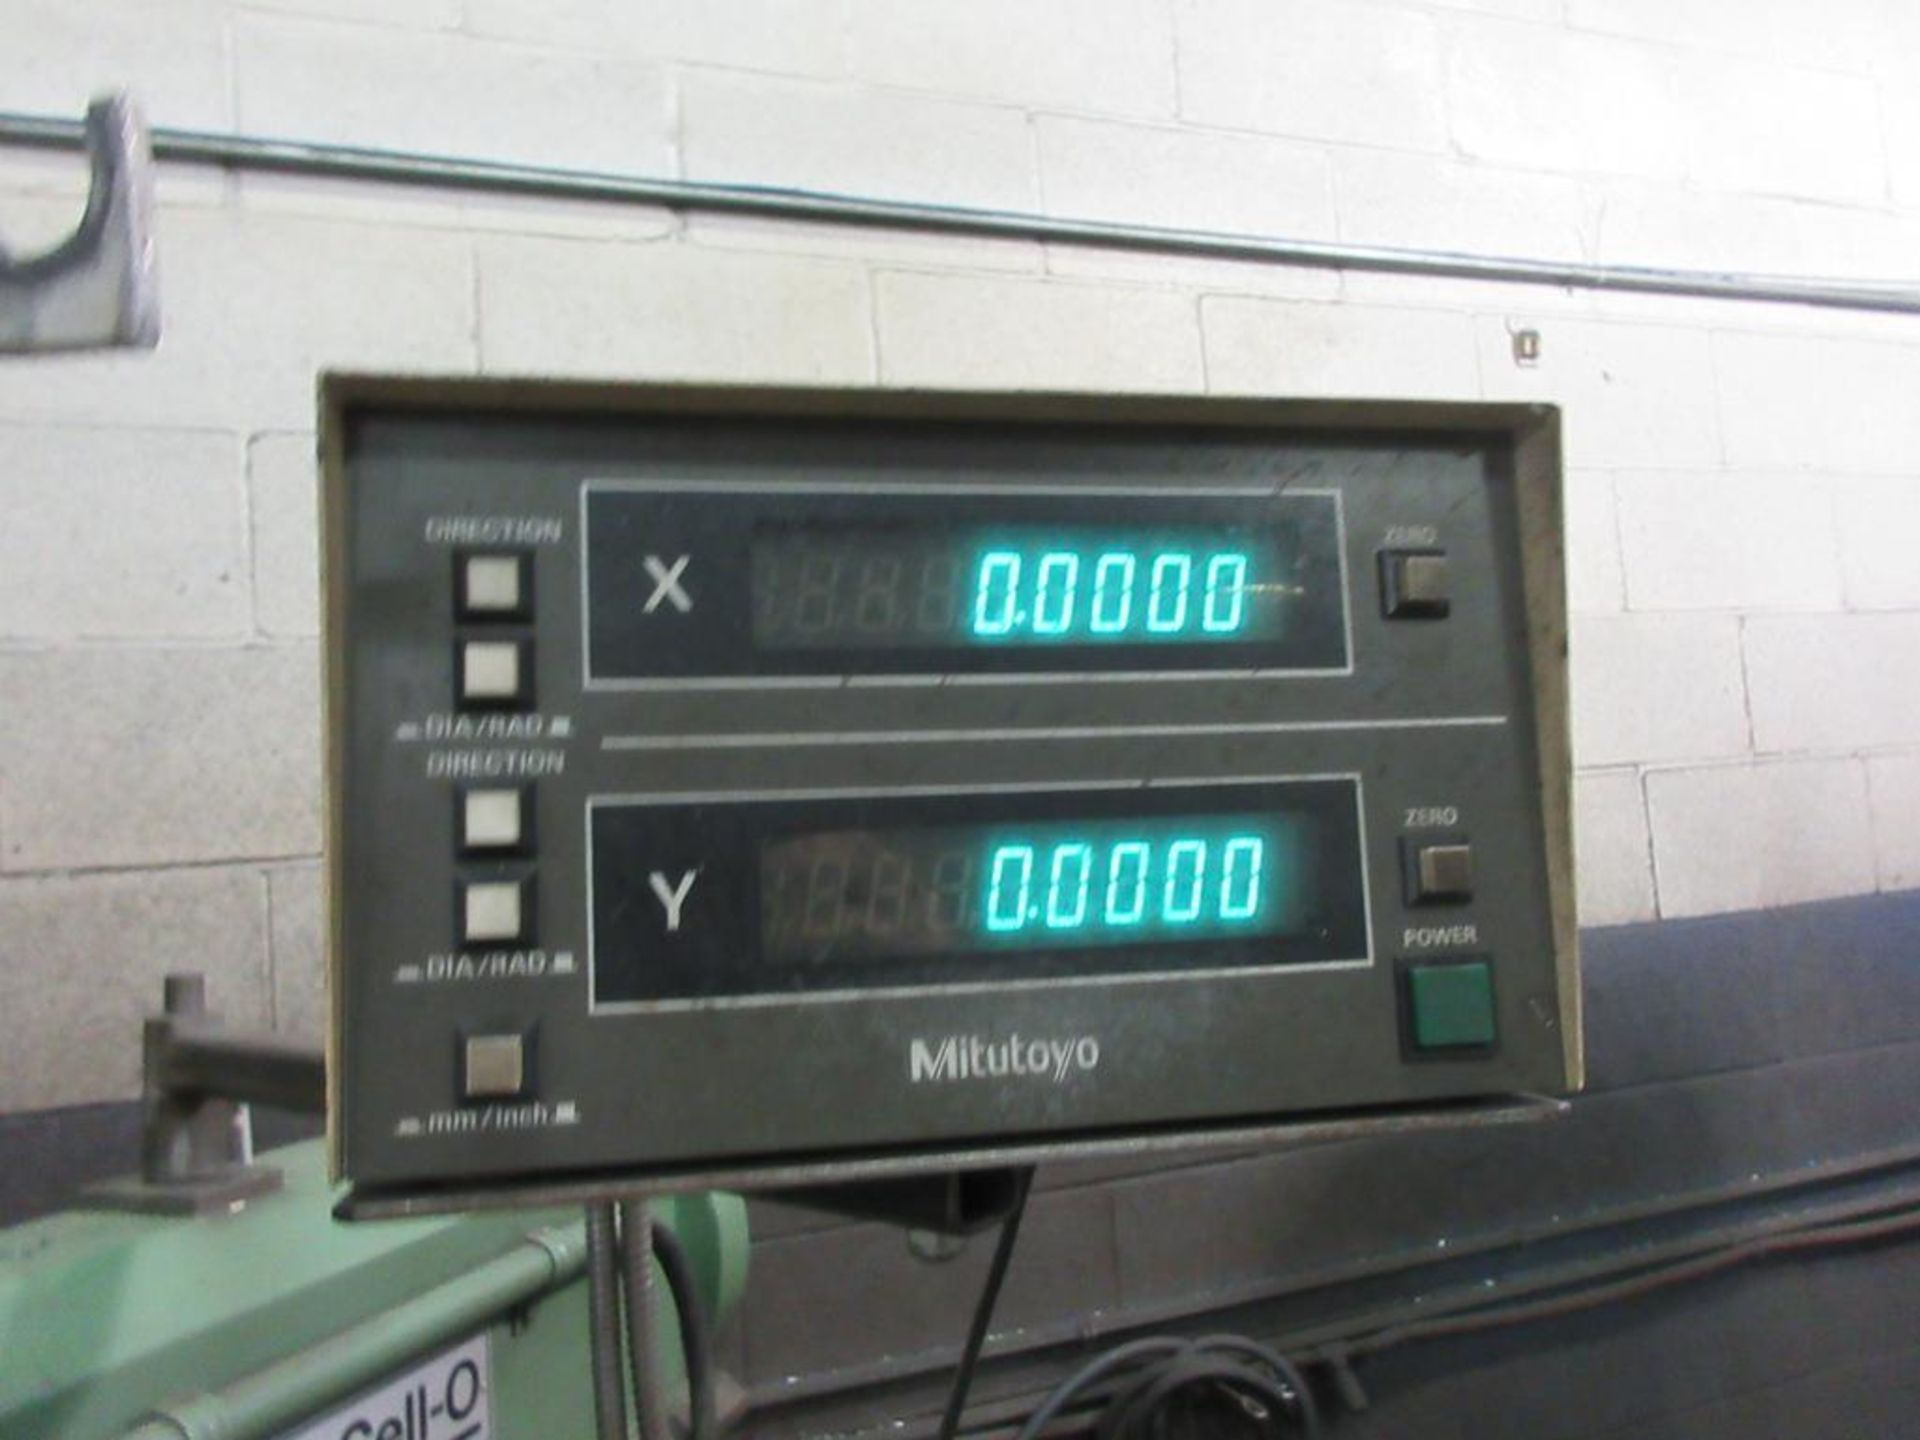 """EXCELLO MILL MODEL 602, 47""""X9"""" TABLE, 85-4000 RPM, MITUTOYO 2 AXIS DRO, COLLET STYLE , 2 BOXES - Image 5 of 6"""